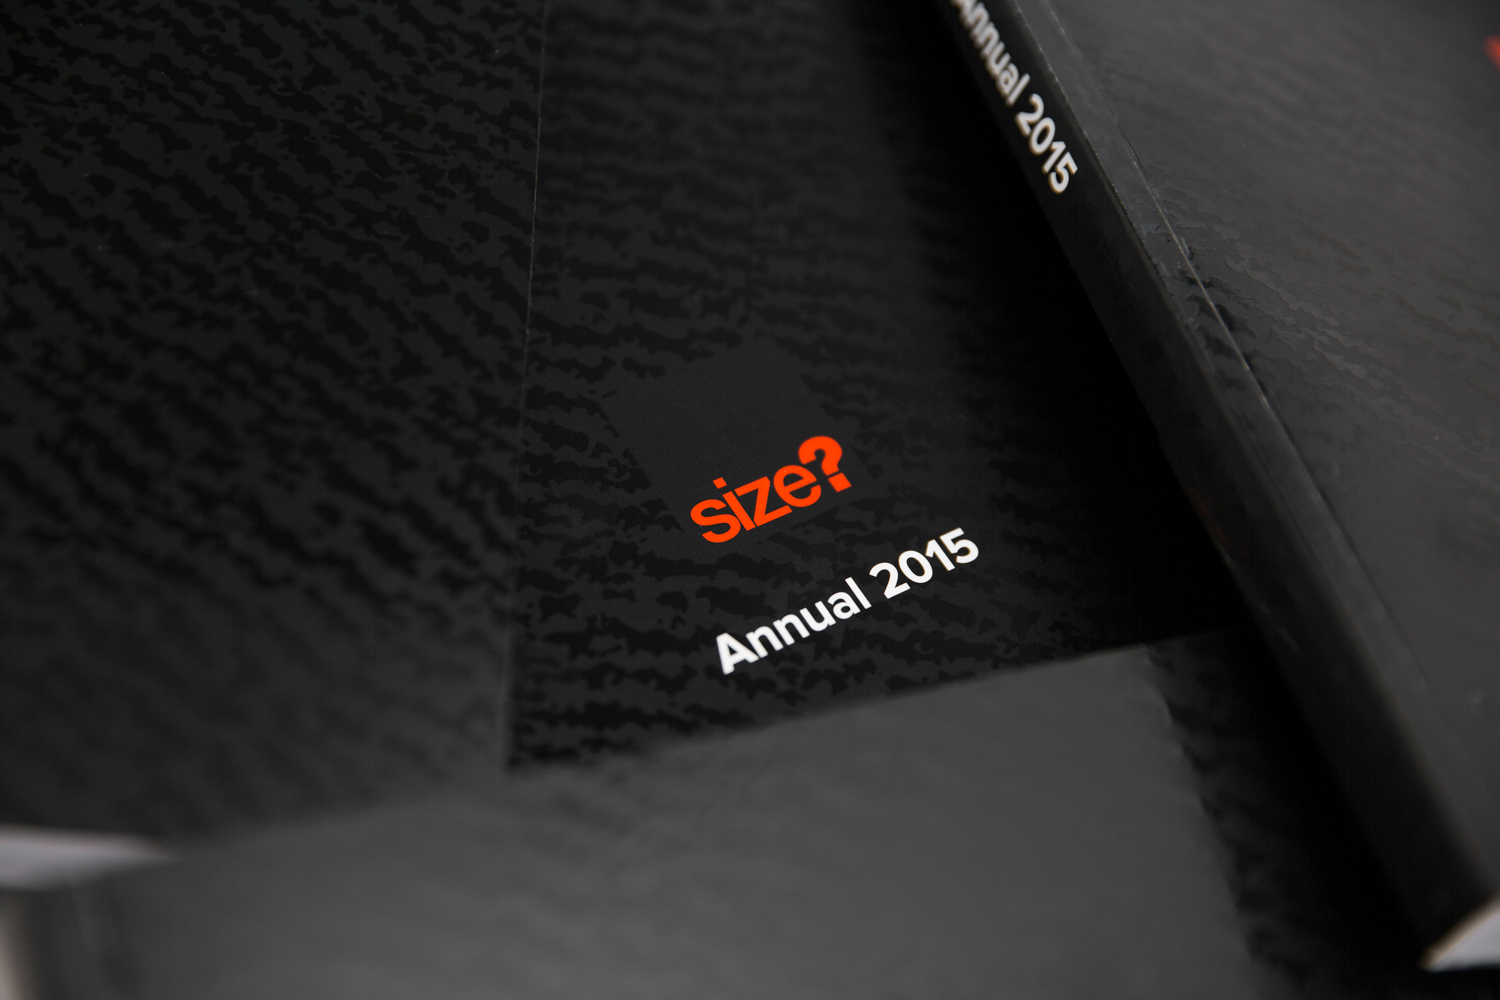 Introducing: The size? Annual 2015